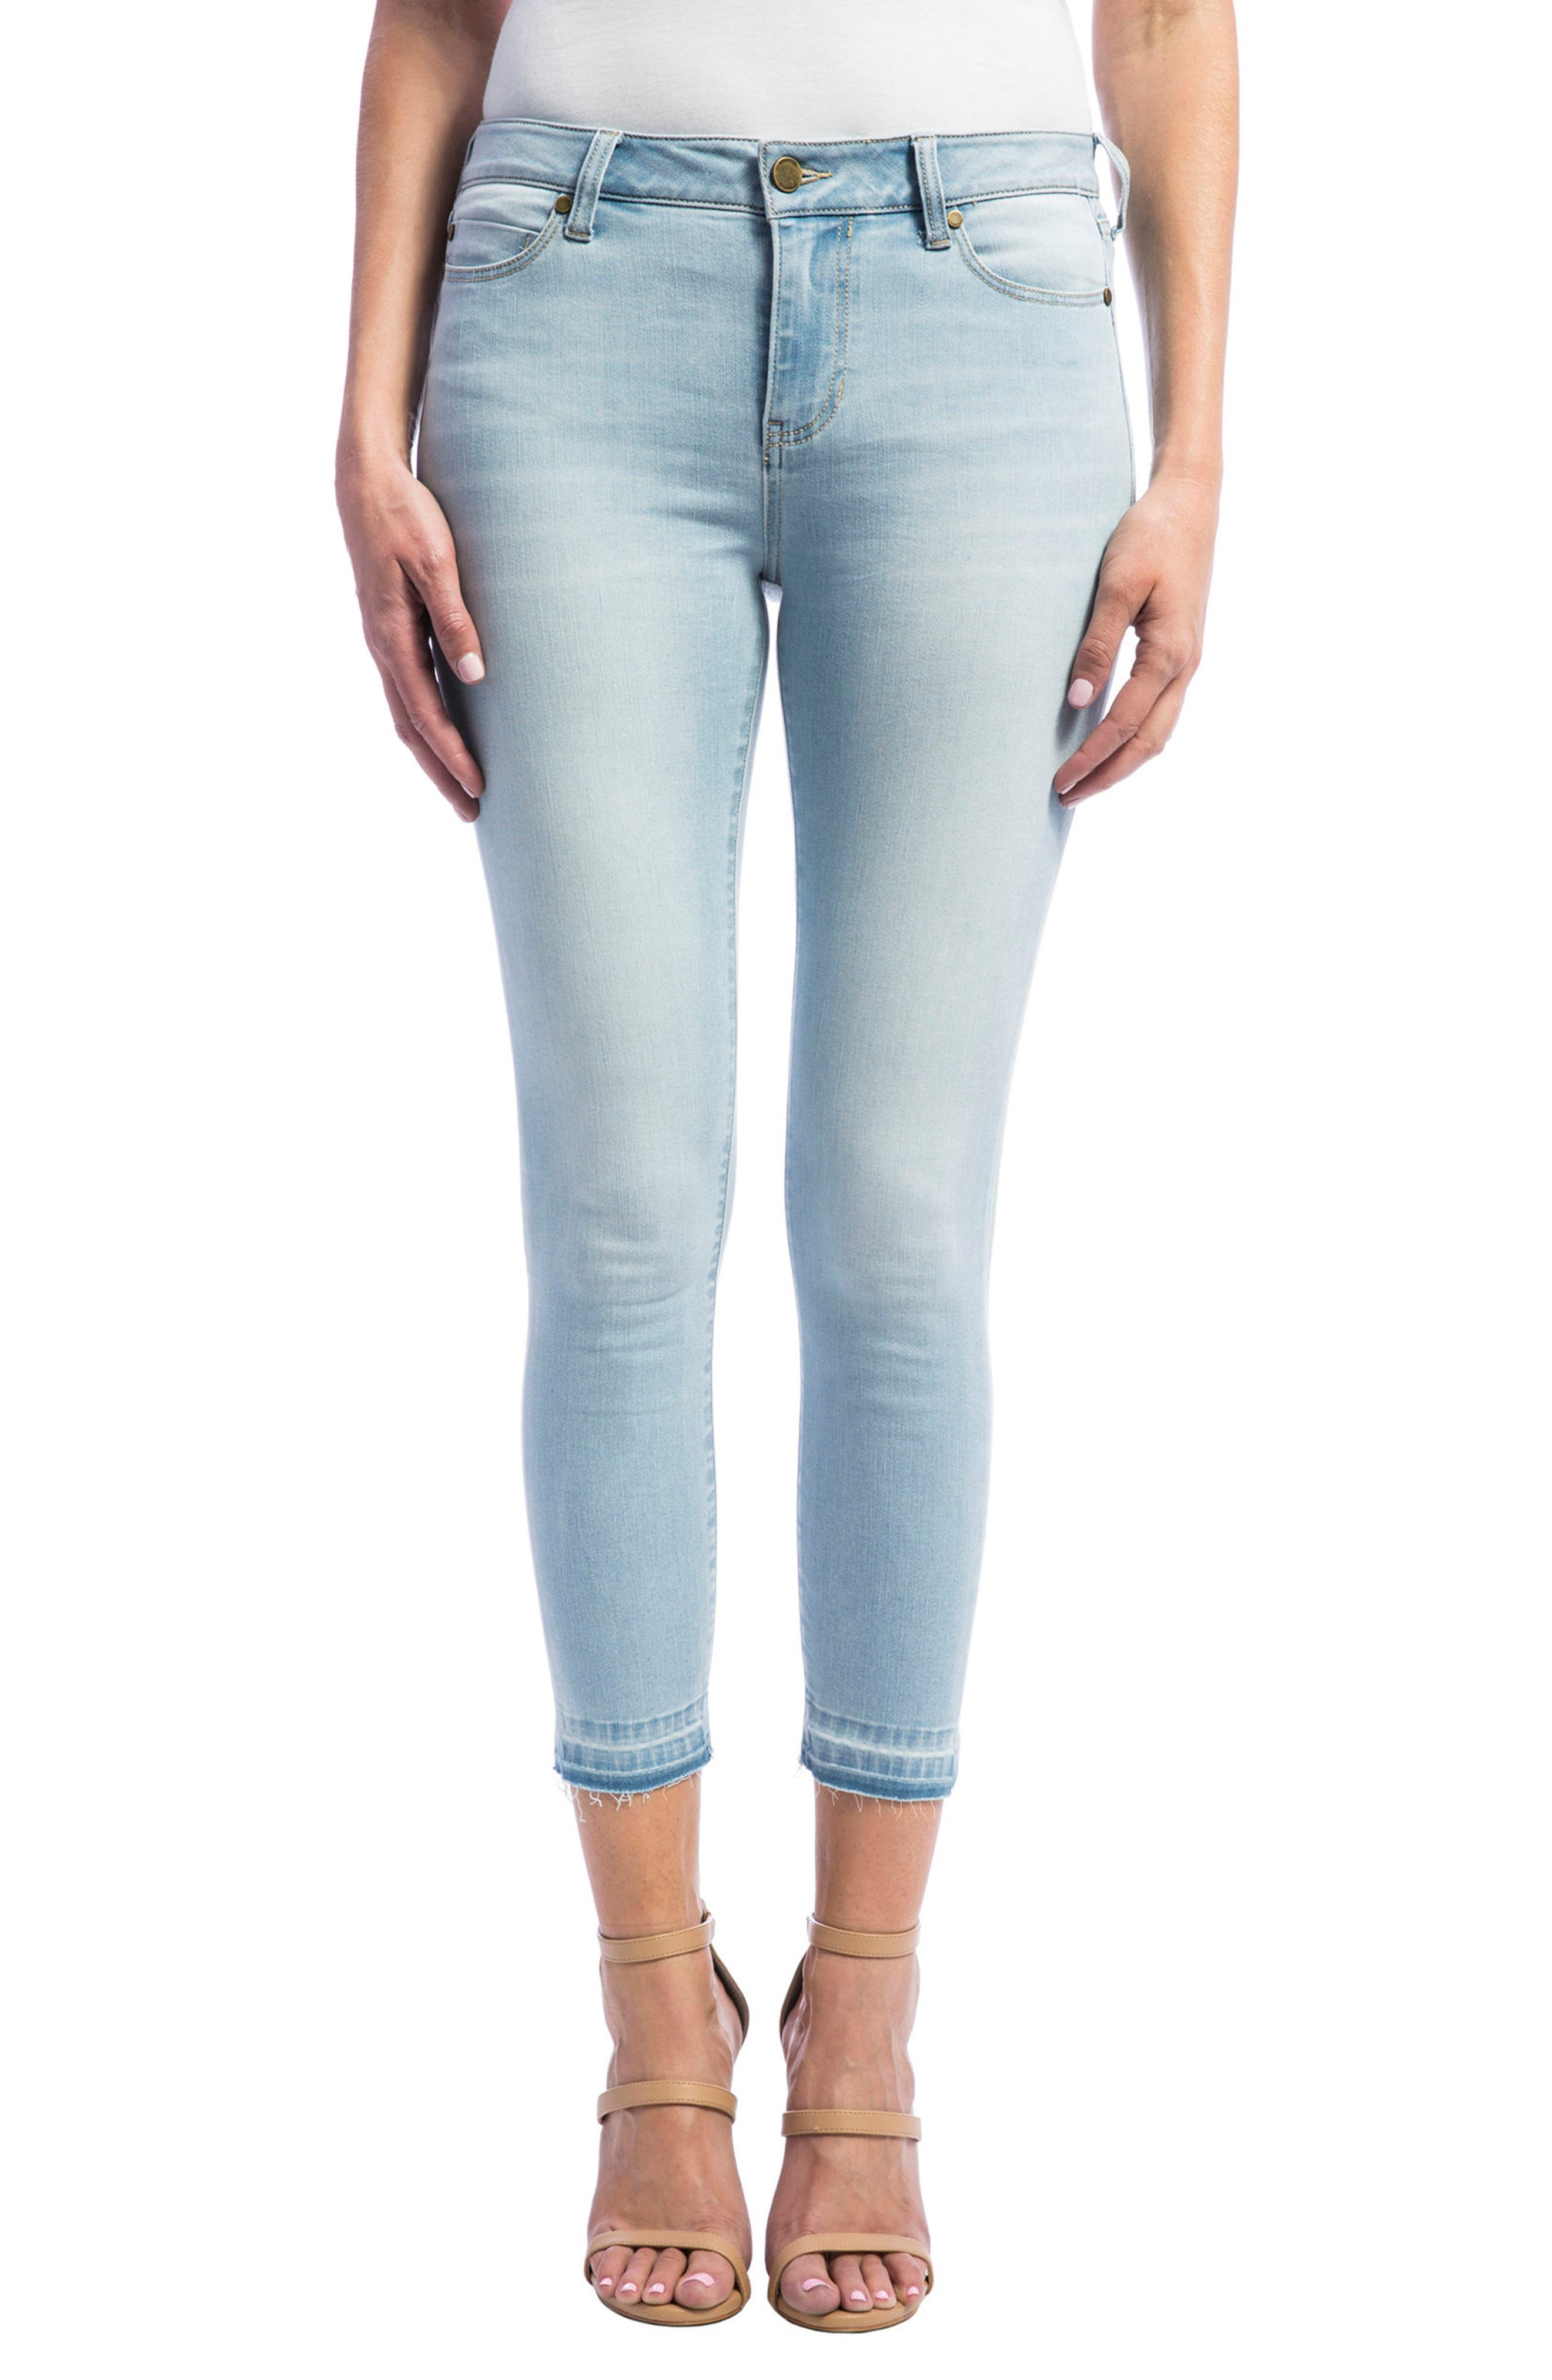 Liverpool Jeans Company The Crop Release Hem Skinny Jeans